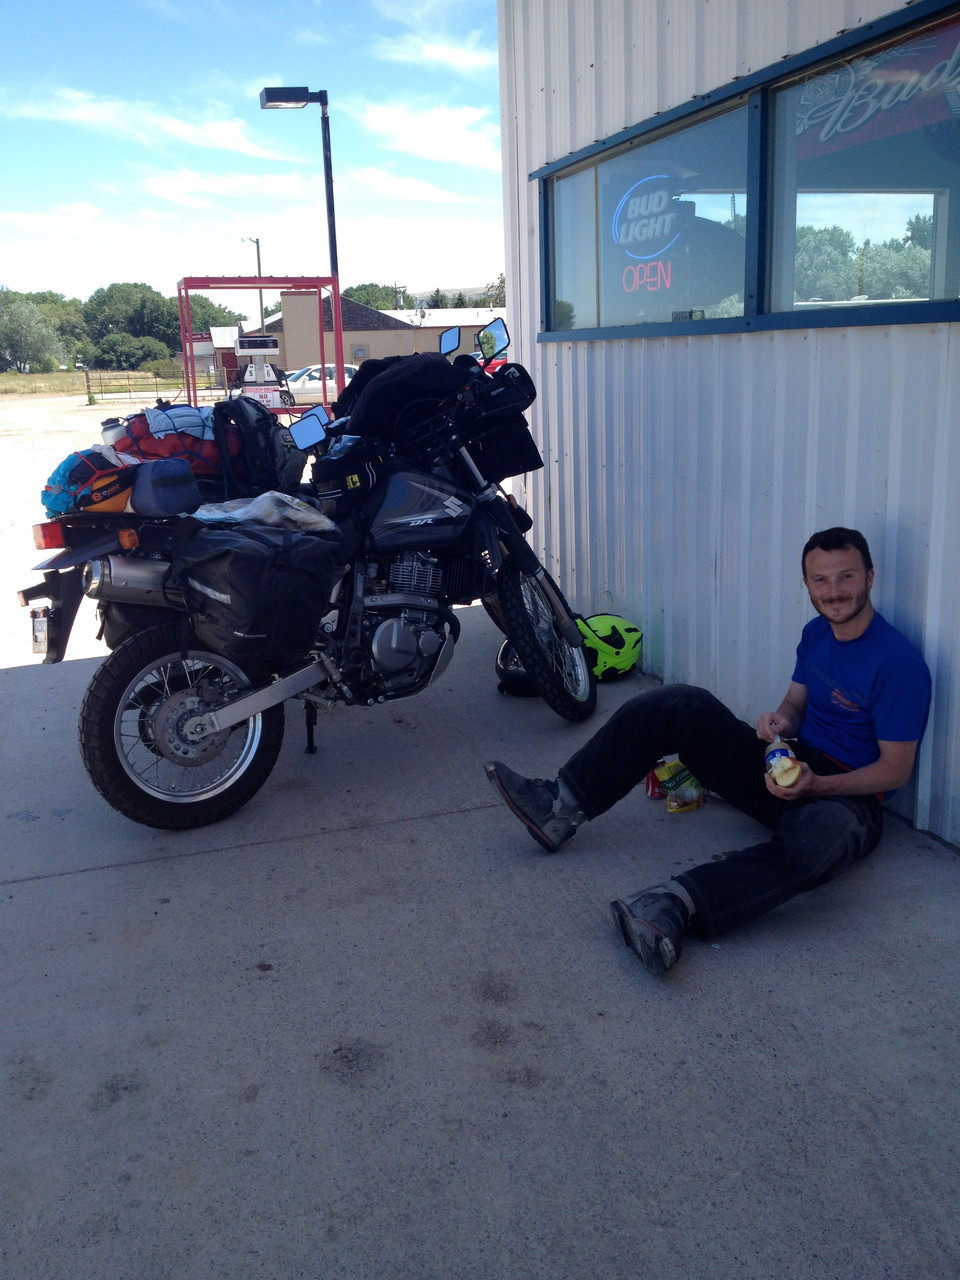 Typical lunch spot outside a gas station